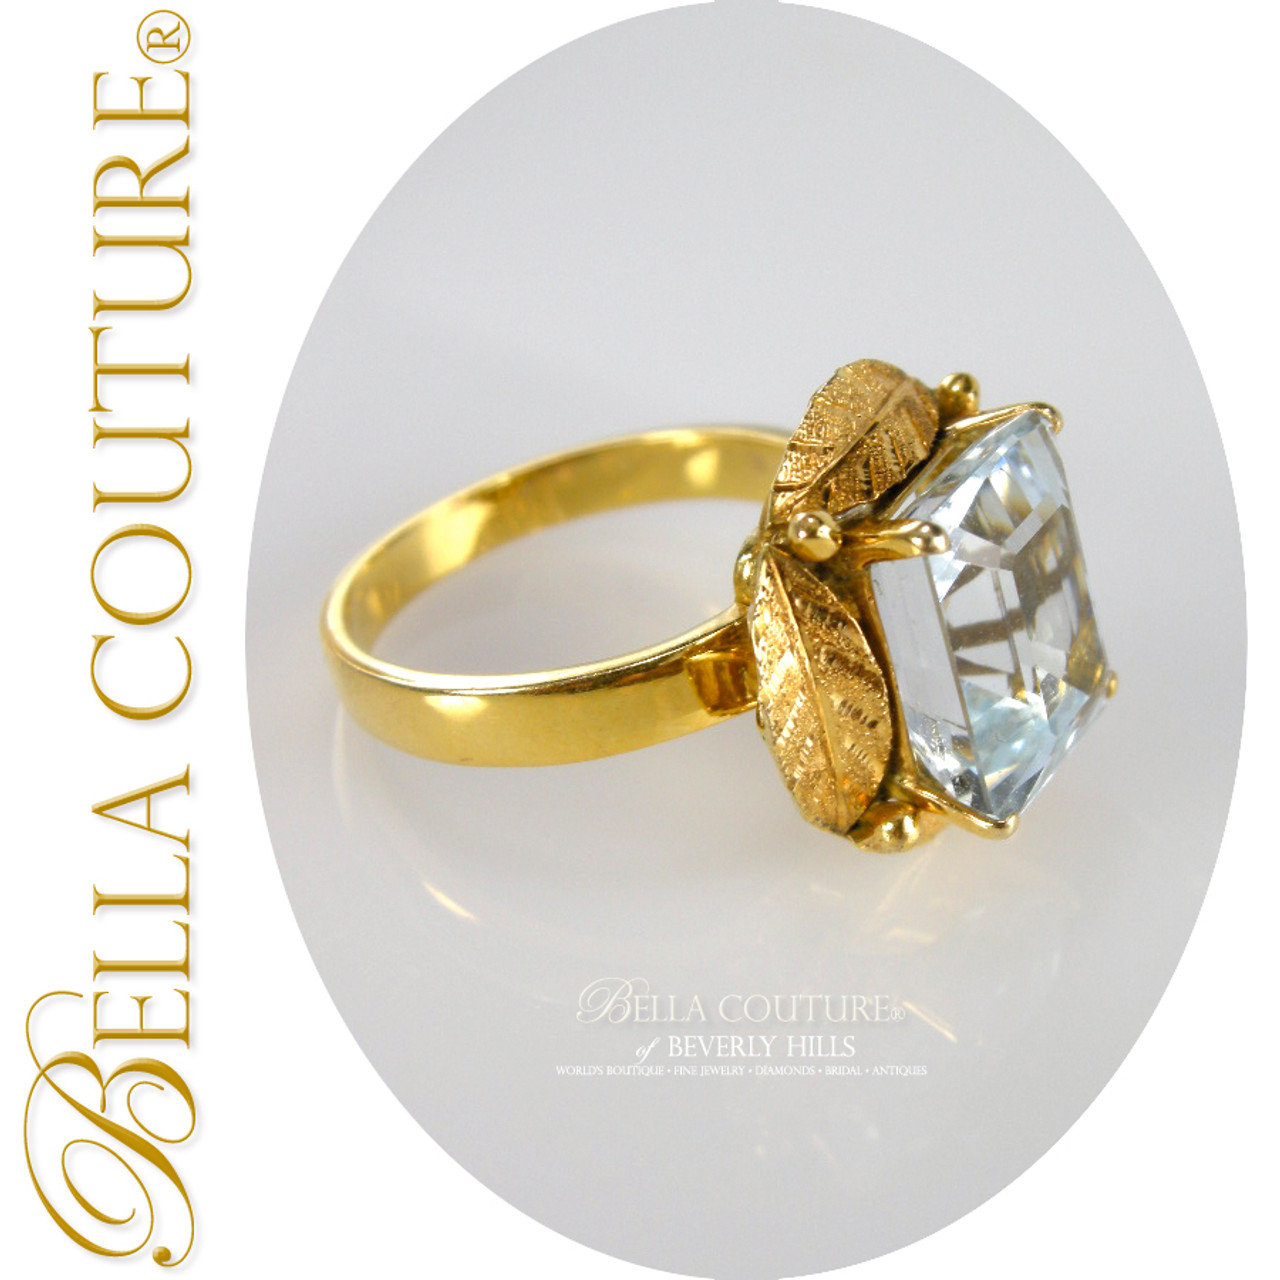 VINTAGE JEWELRY VINTAGE Gold Jewelry BELLA COUTURE